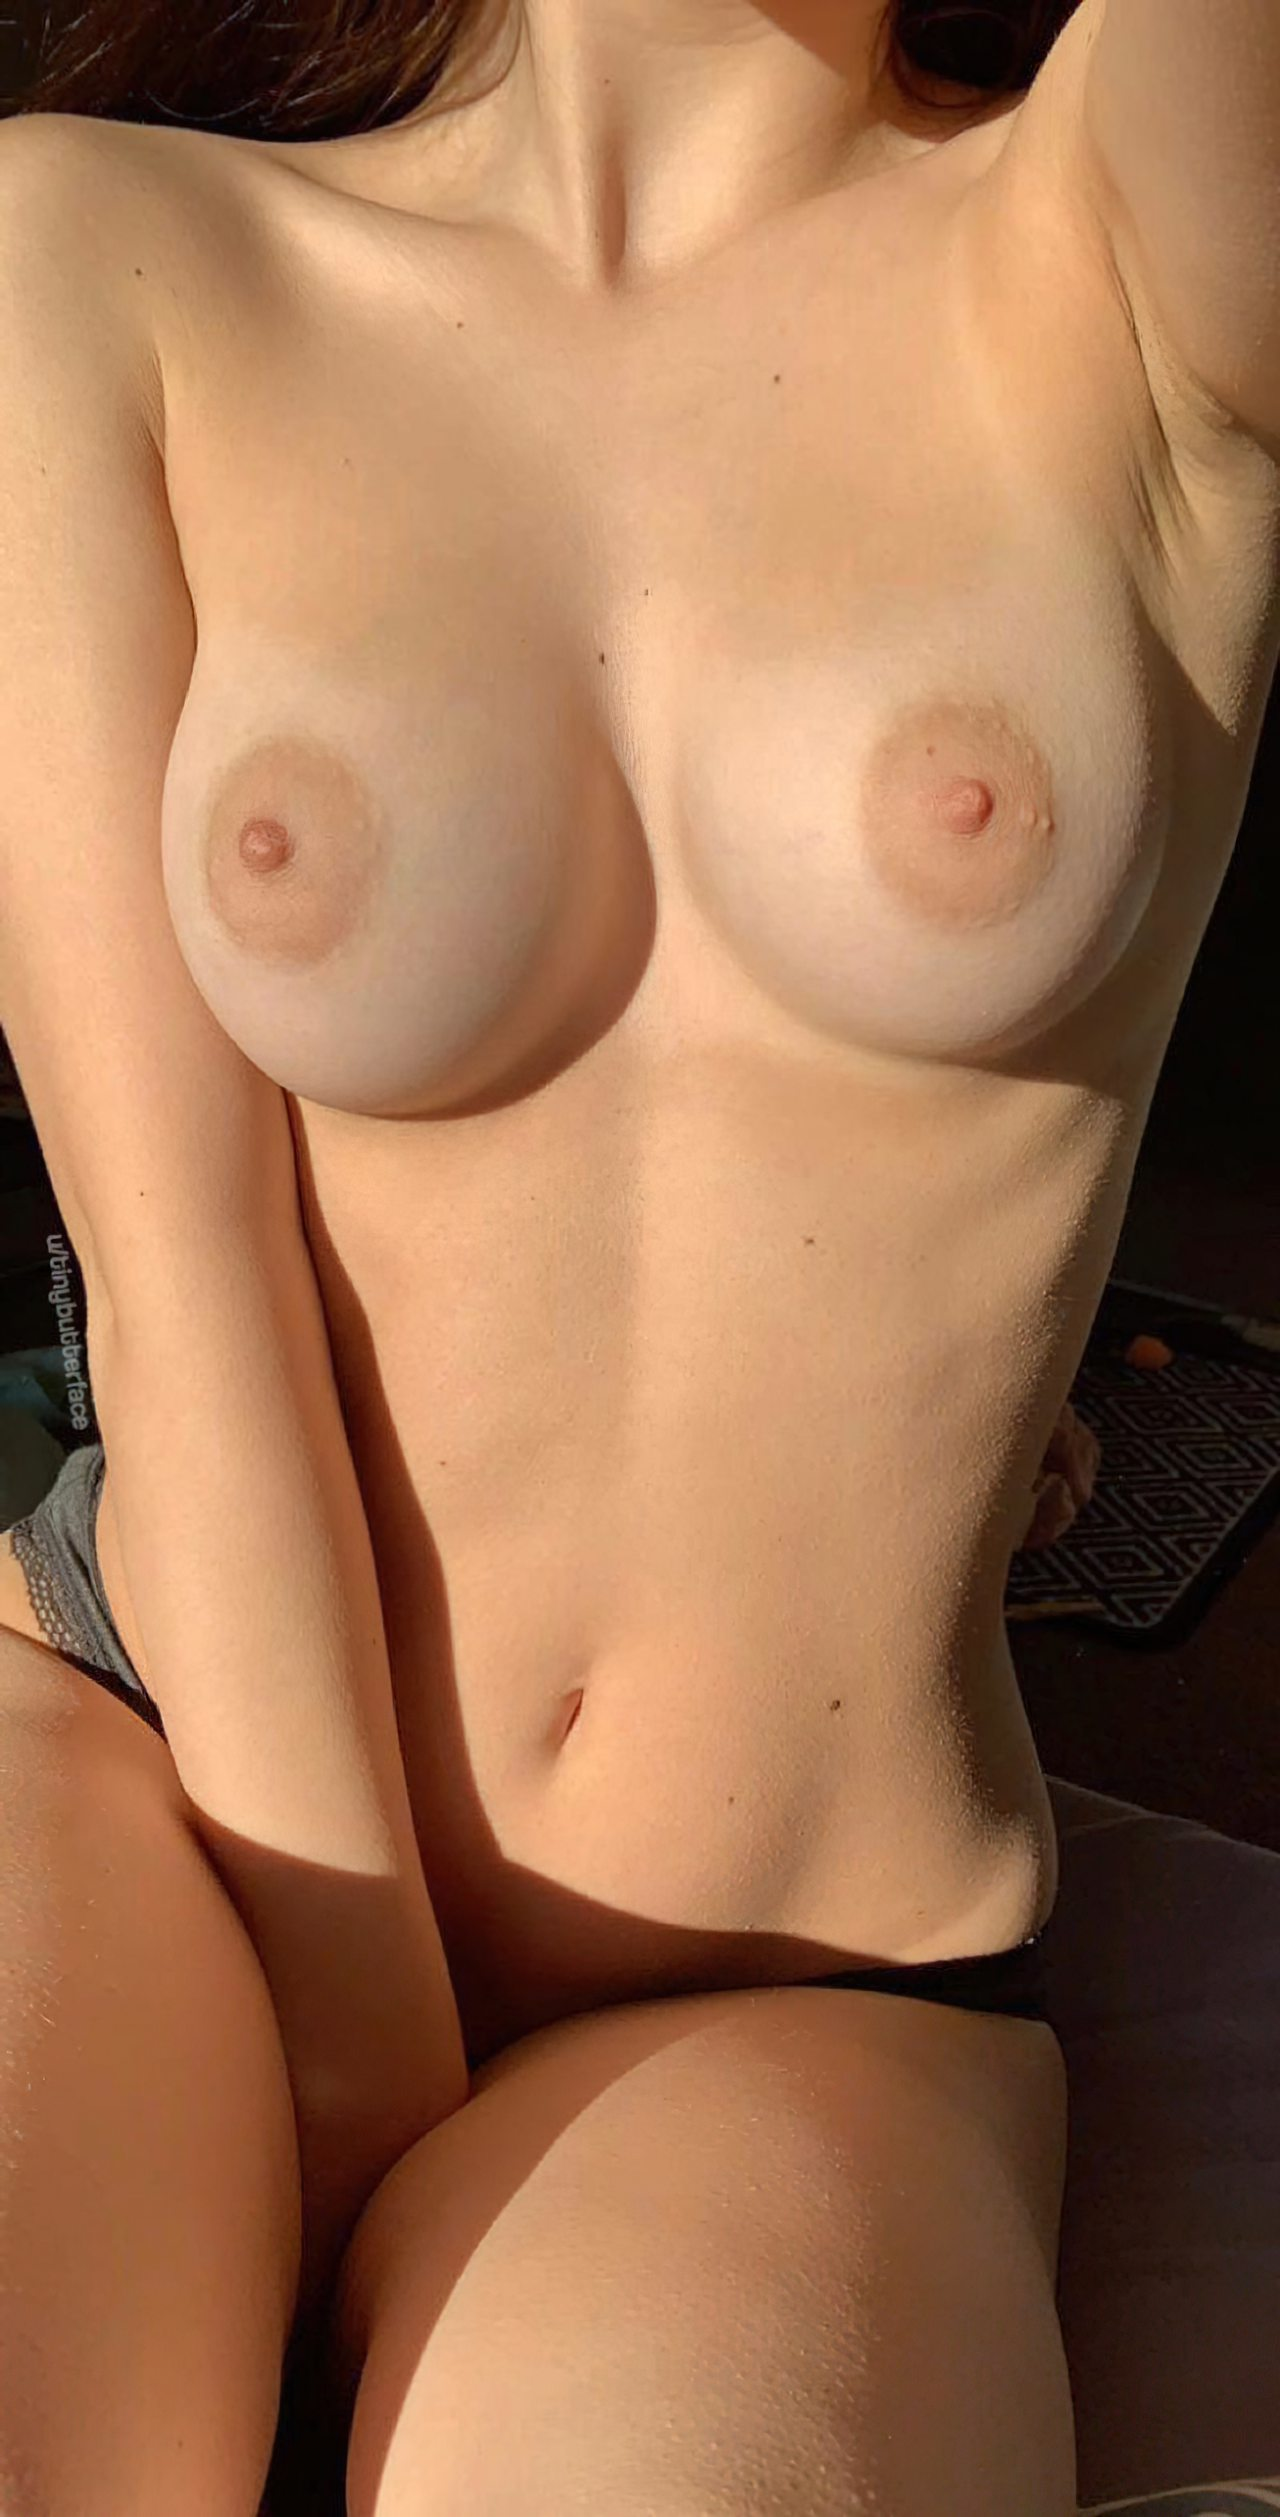 Topless (37)